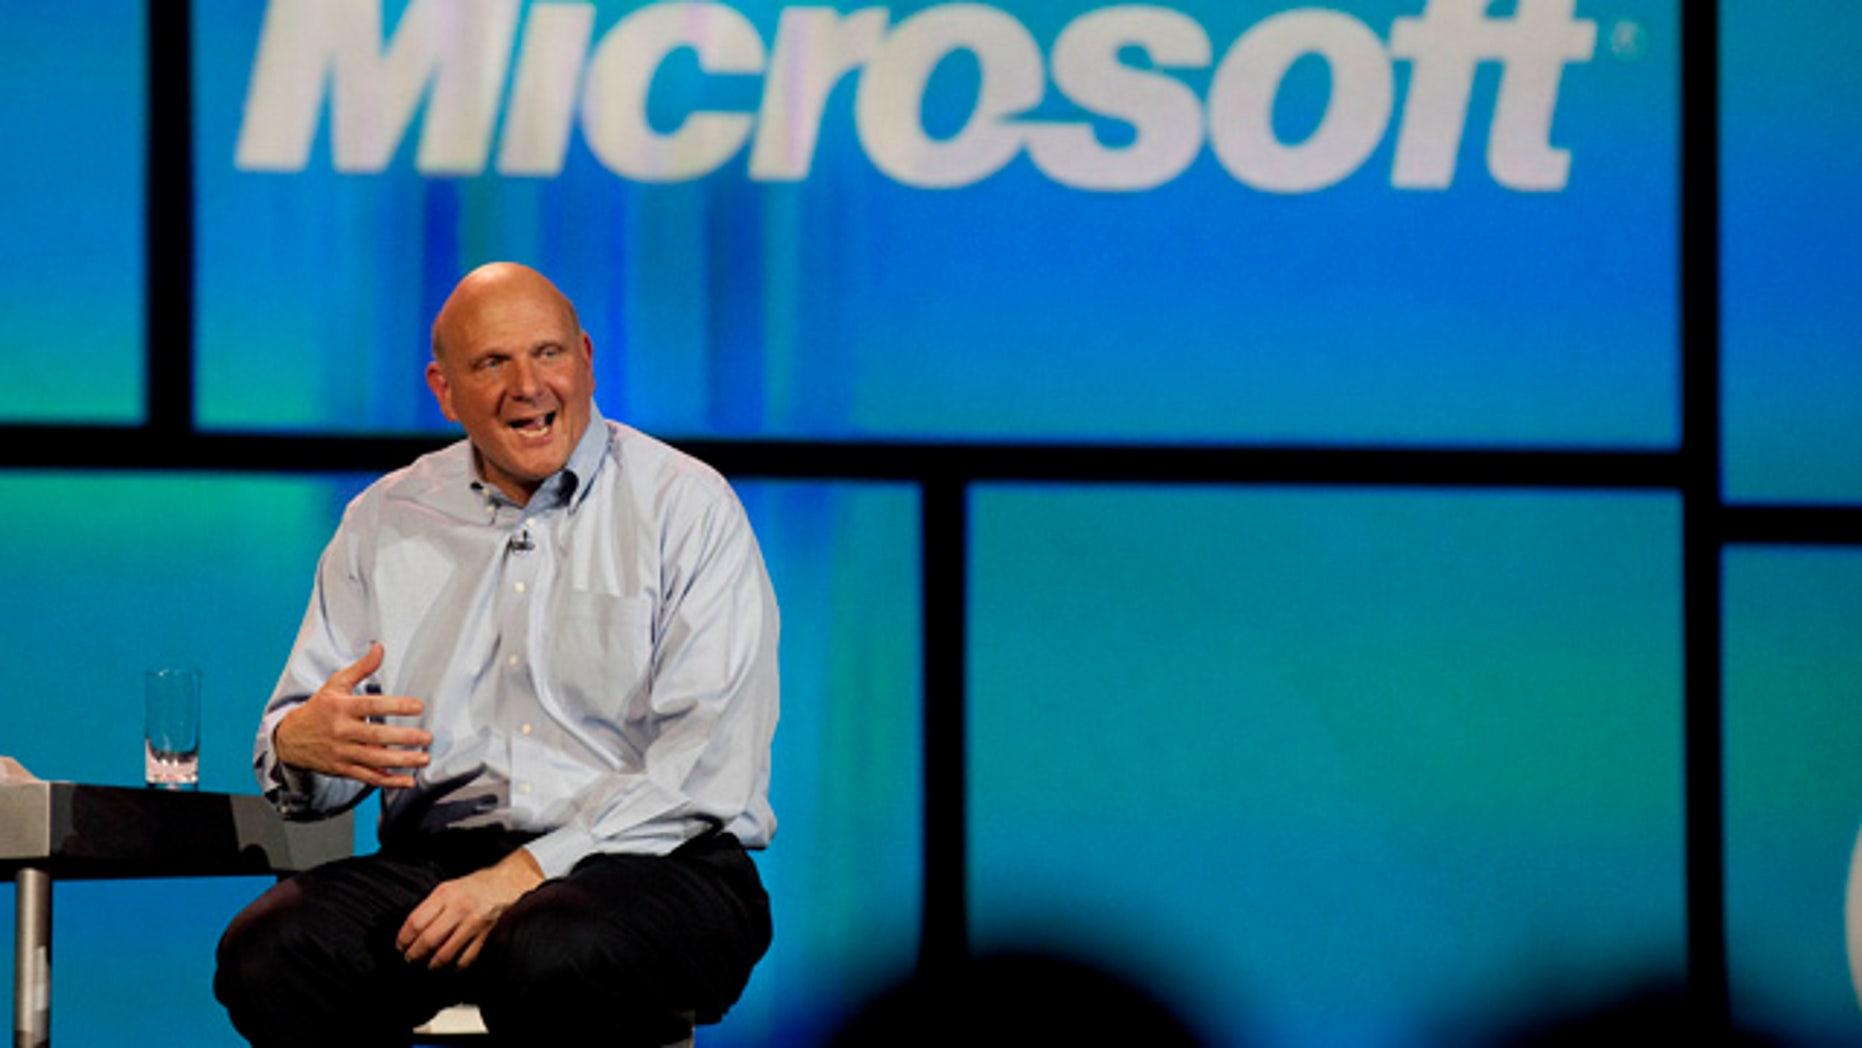 Microsoft CEO Steve Ballmer talks about Windows 8 during his keynote address at the 2012 International CES tradeshow.